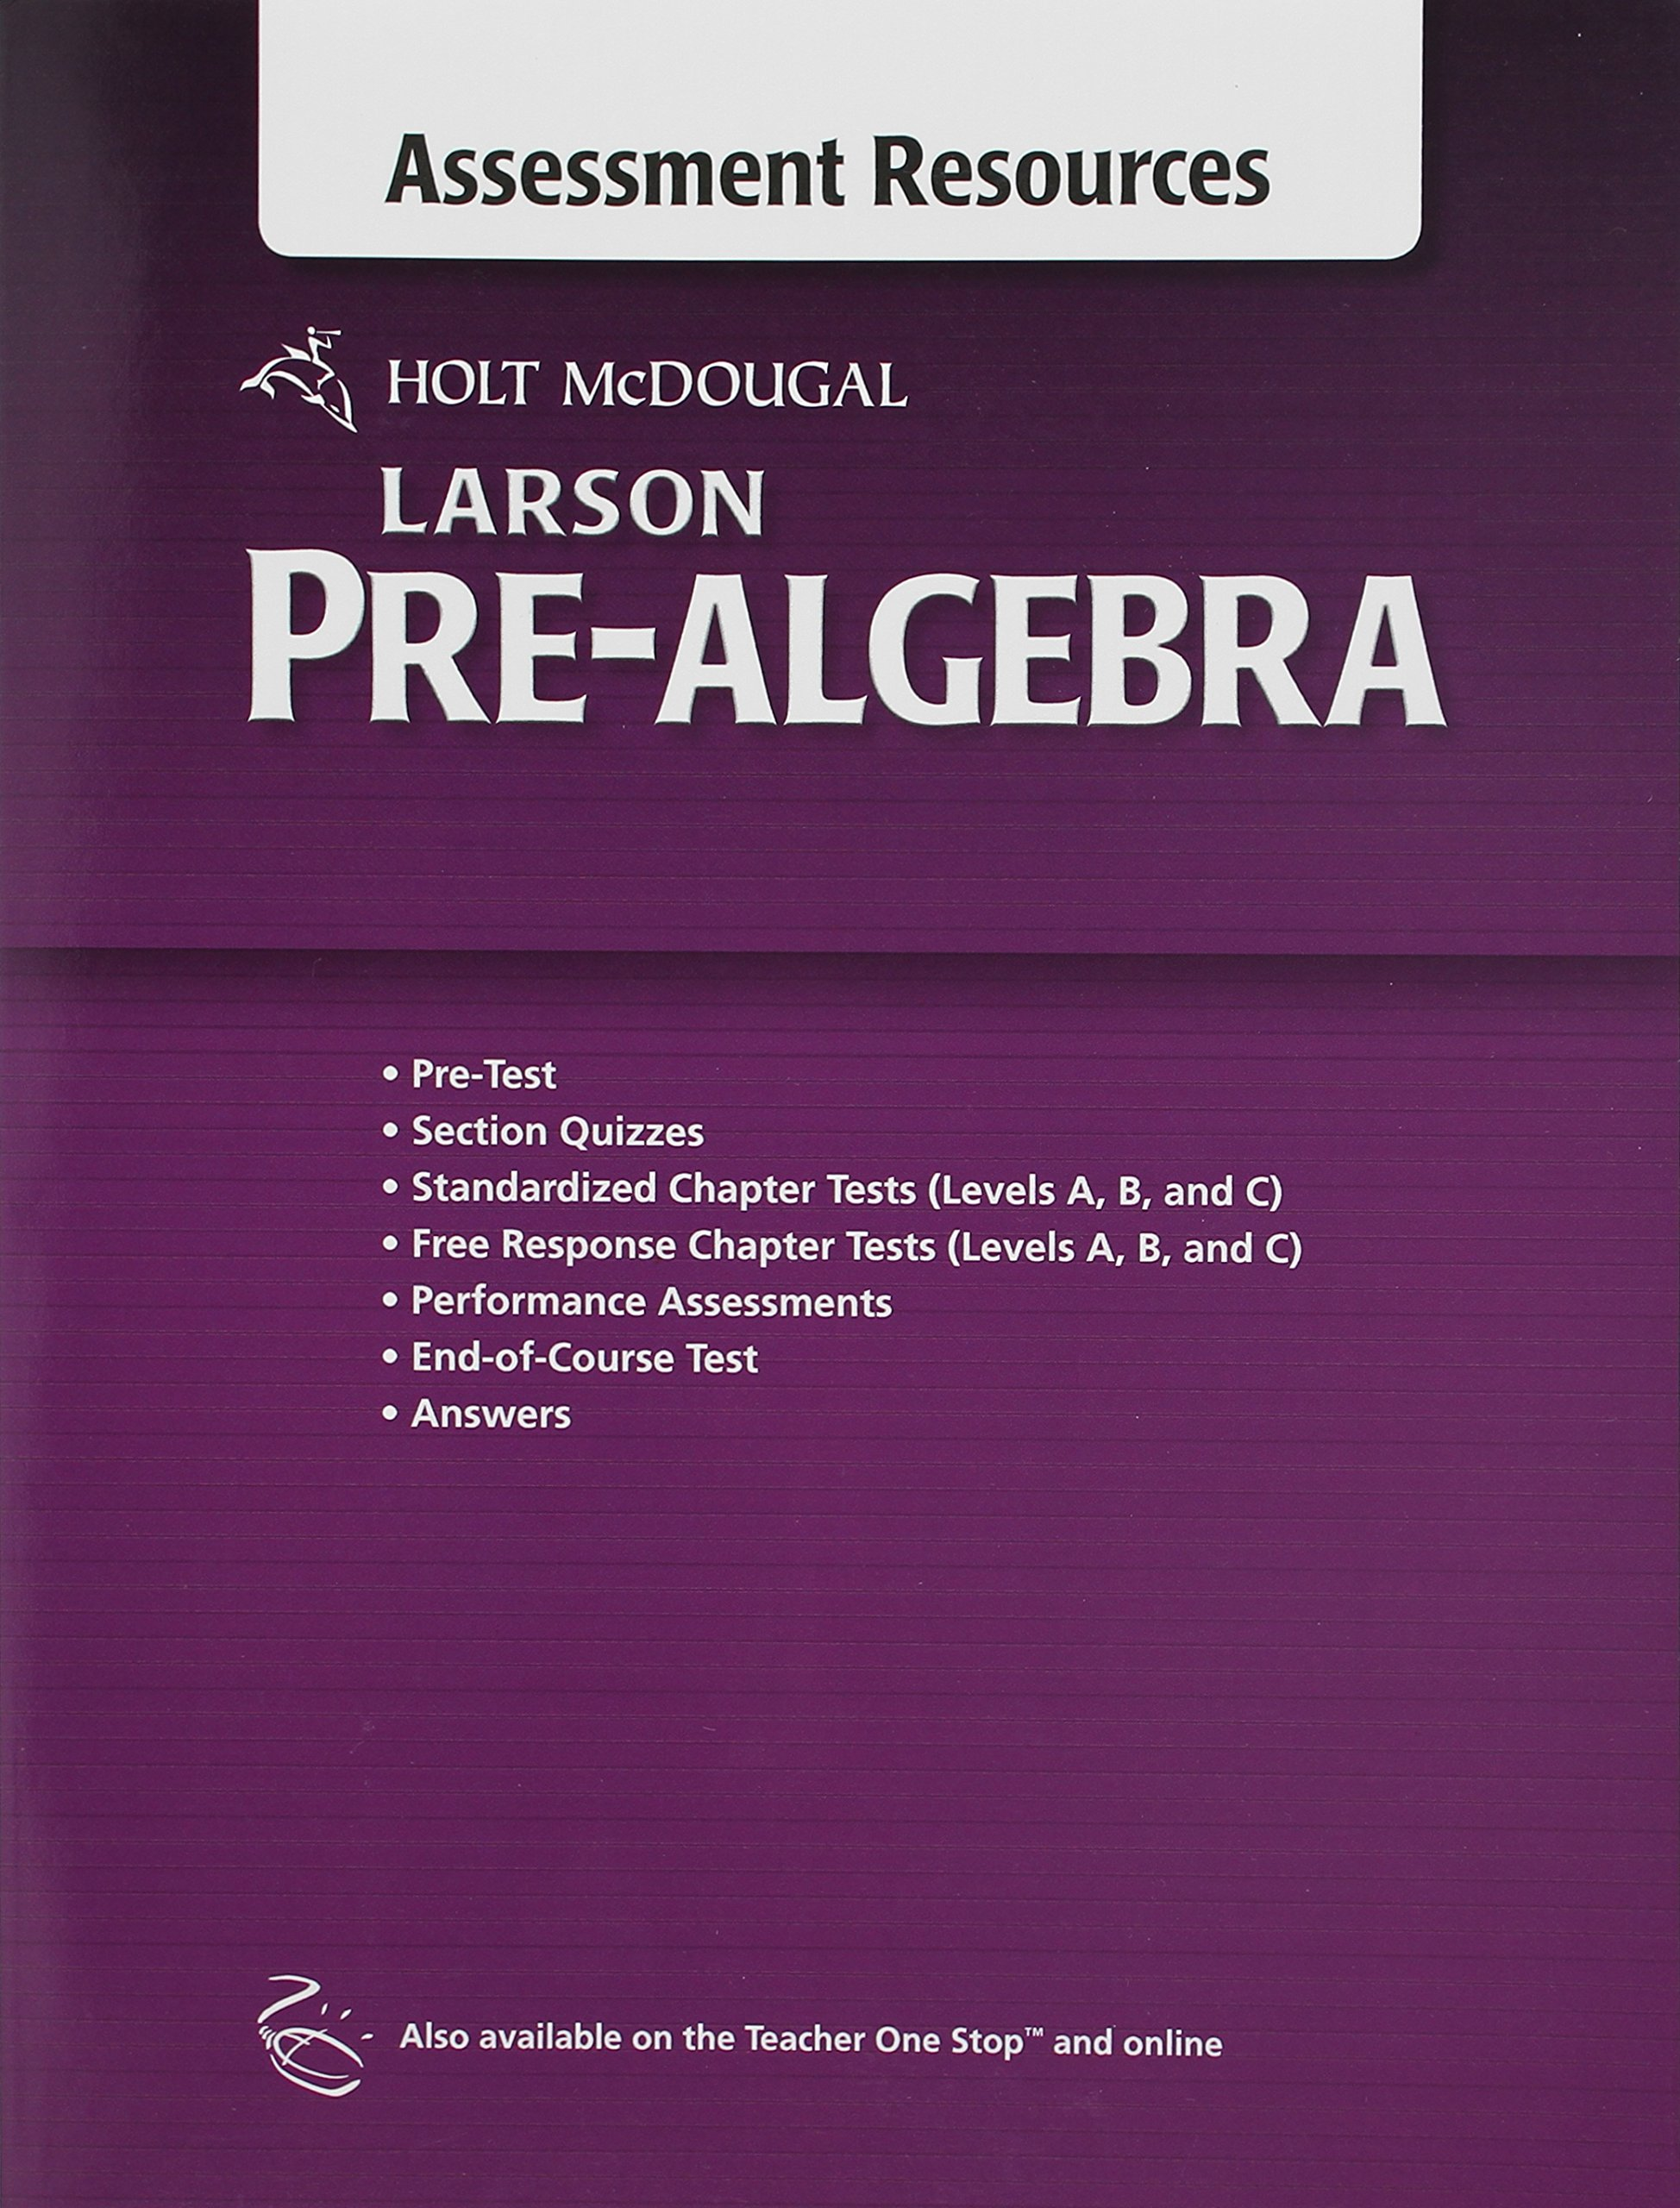 Holt McDougal Larson Pre-Algebra: Common Core Assessment